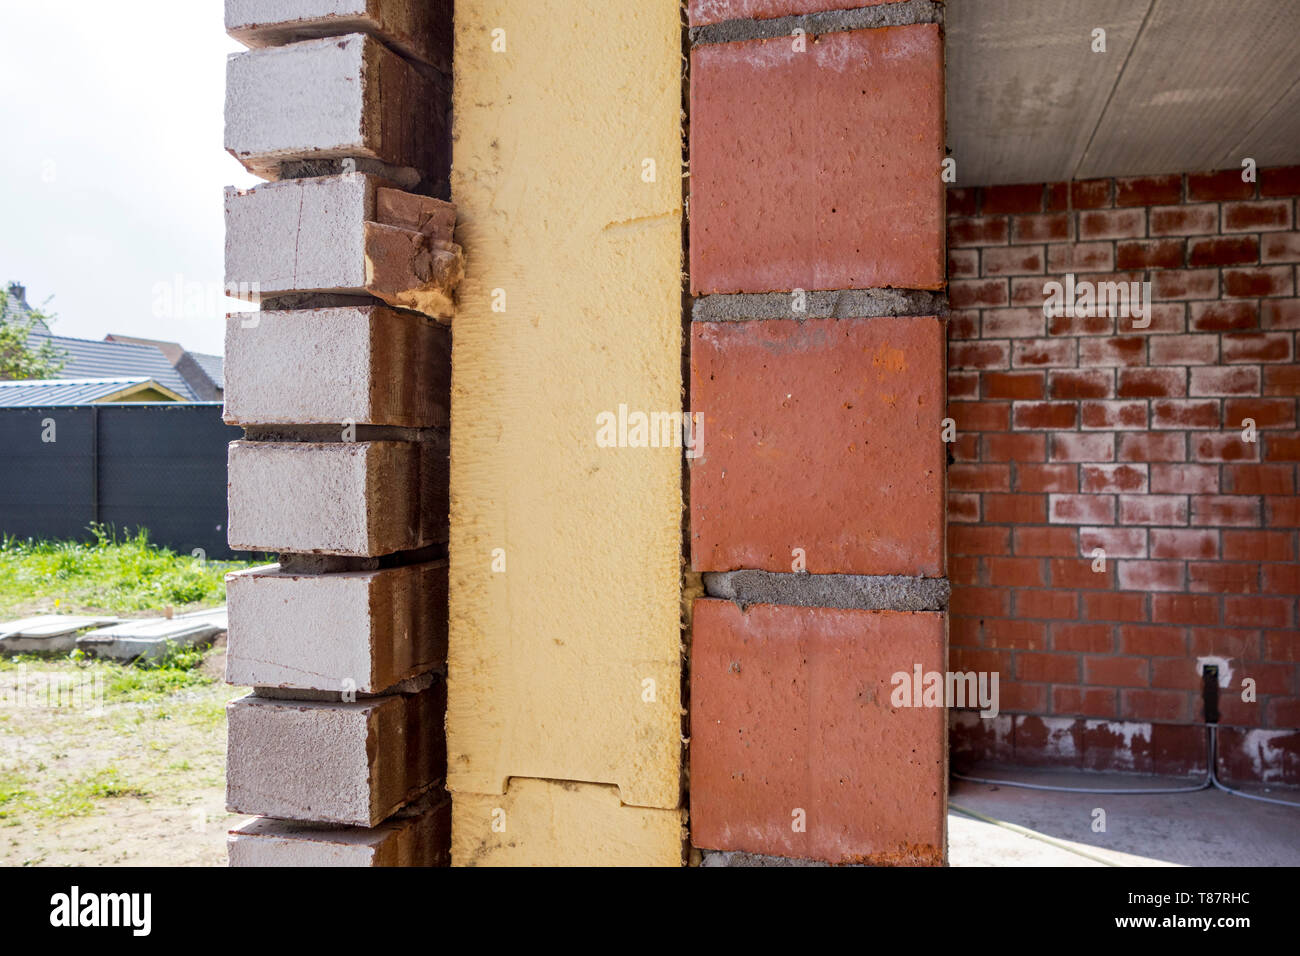 Wall Insulation High Resolution Stock Photography And Images Alamy